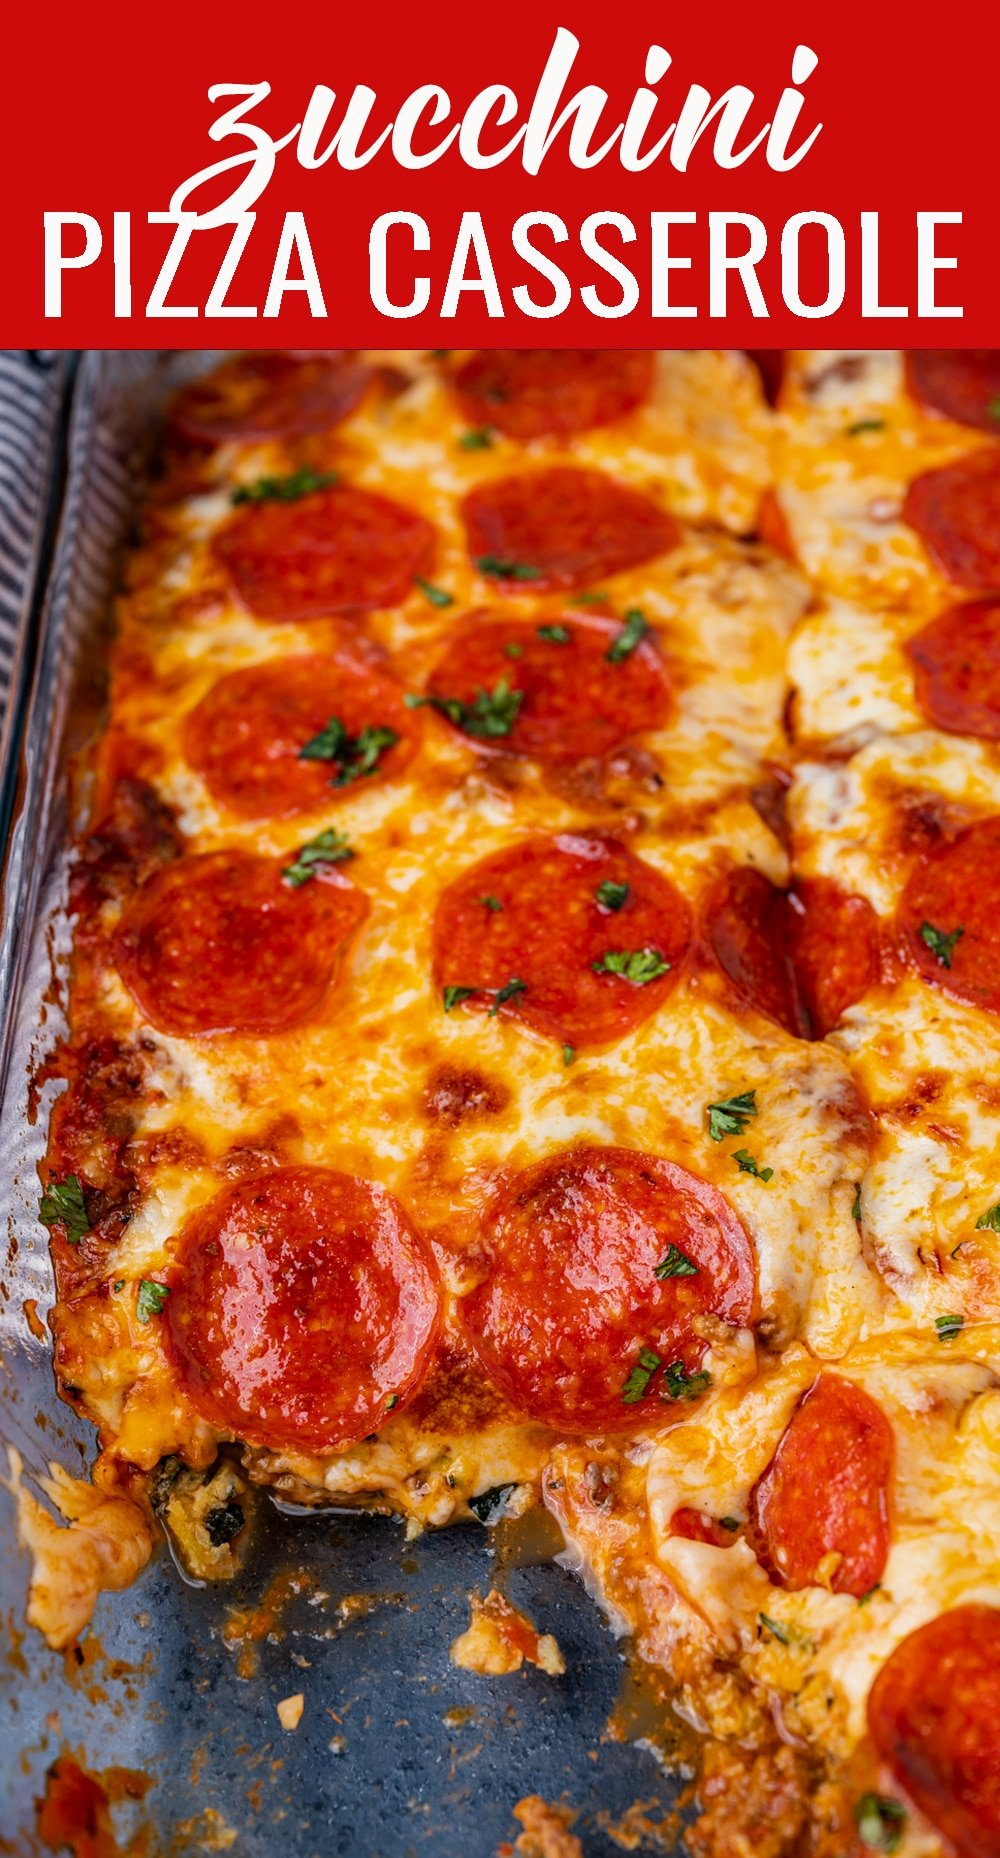 Low carb never tasted so good! Zucchini pizza casserole loaded with a meat sauce, mozzarella and pepperoni. Top with your favorite pizza toppings. via @tastesoflizzyt